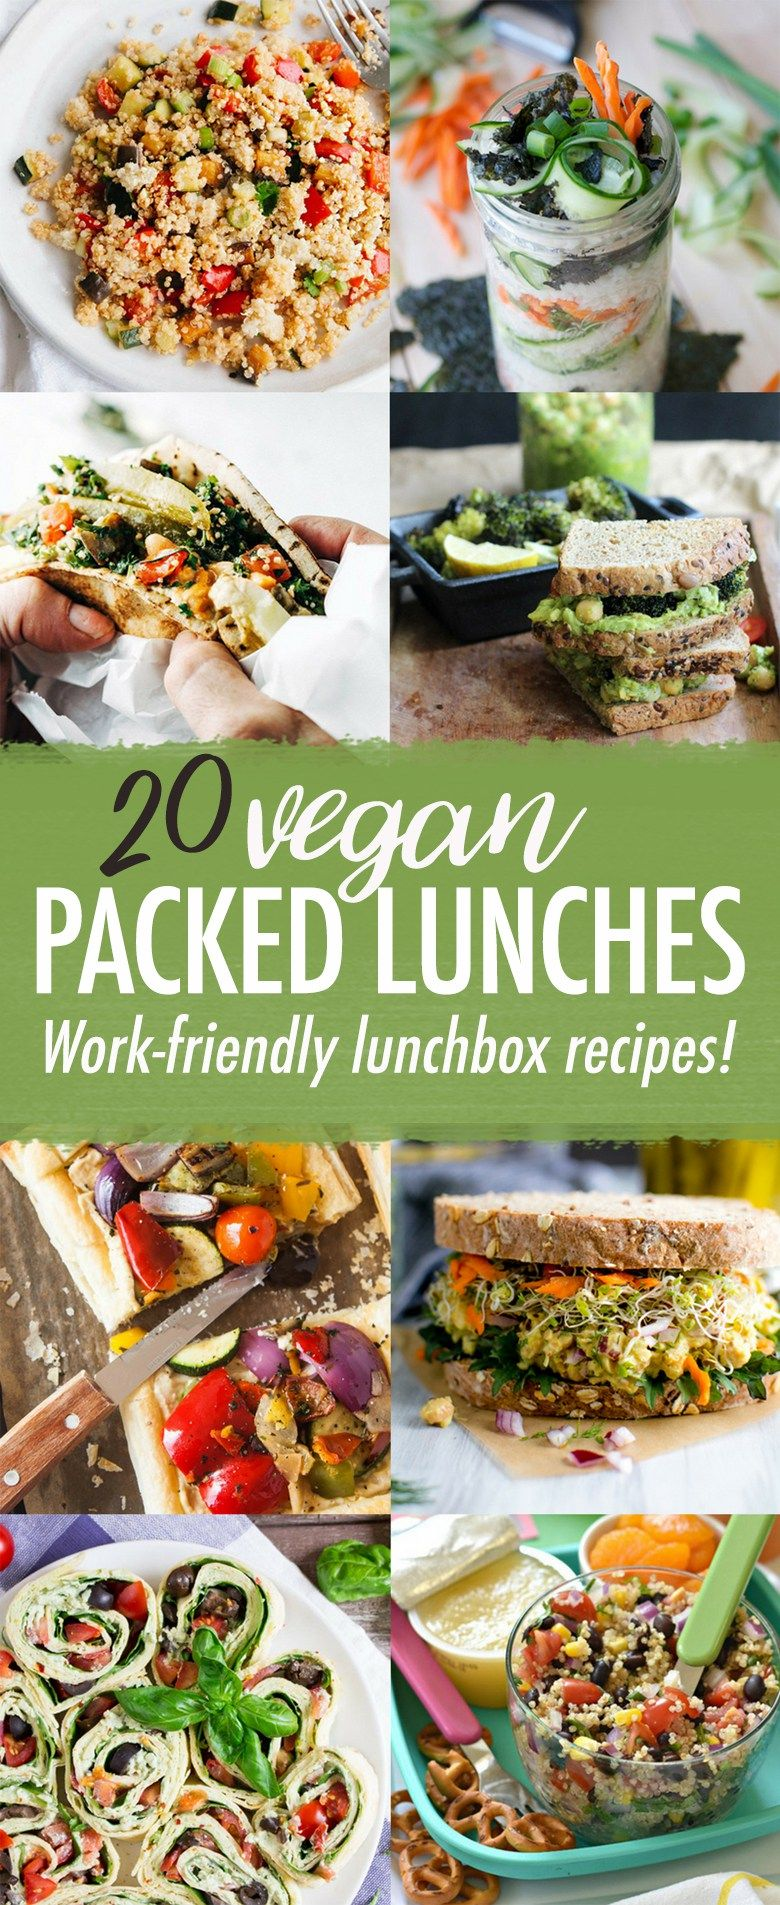 20 Vegan Packed Lunch Recipes The Vegan Way Vegan